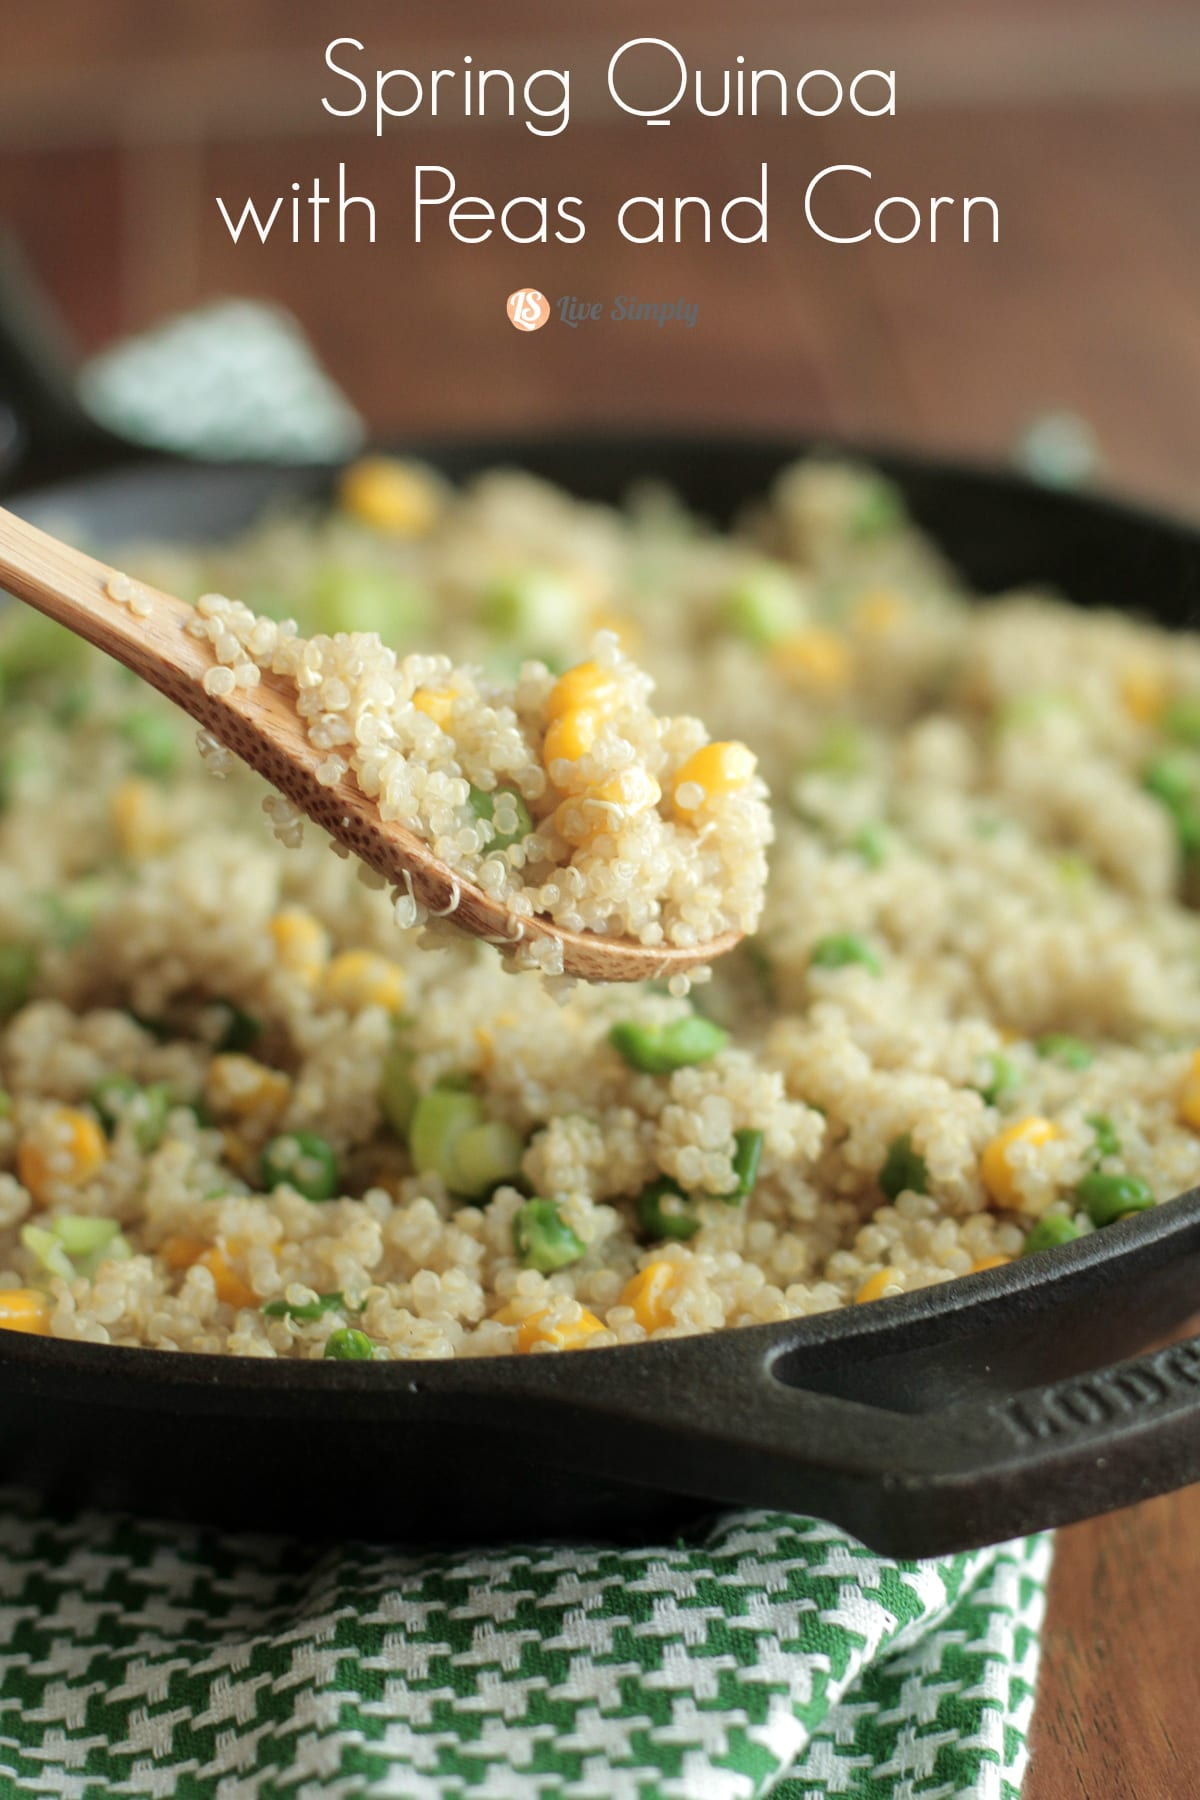 Quinoa with peas and corn live simply spring quinoa with peas and corn live simply forumfinder Image collections